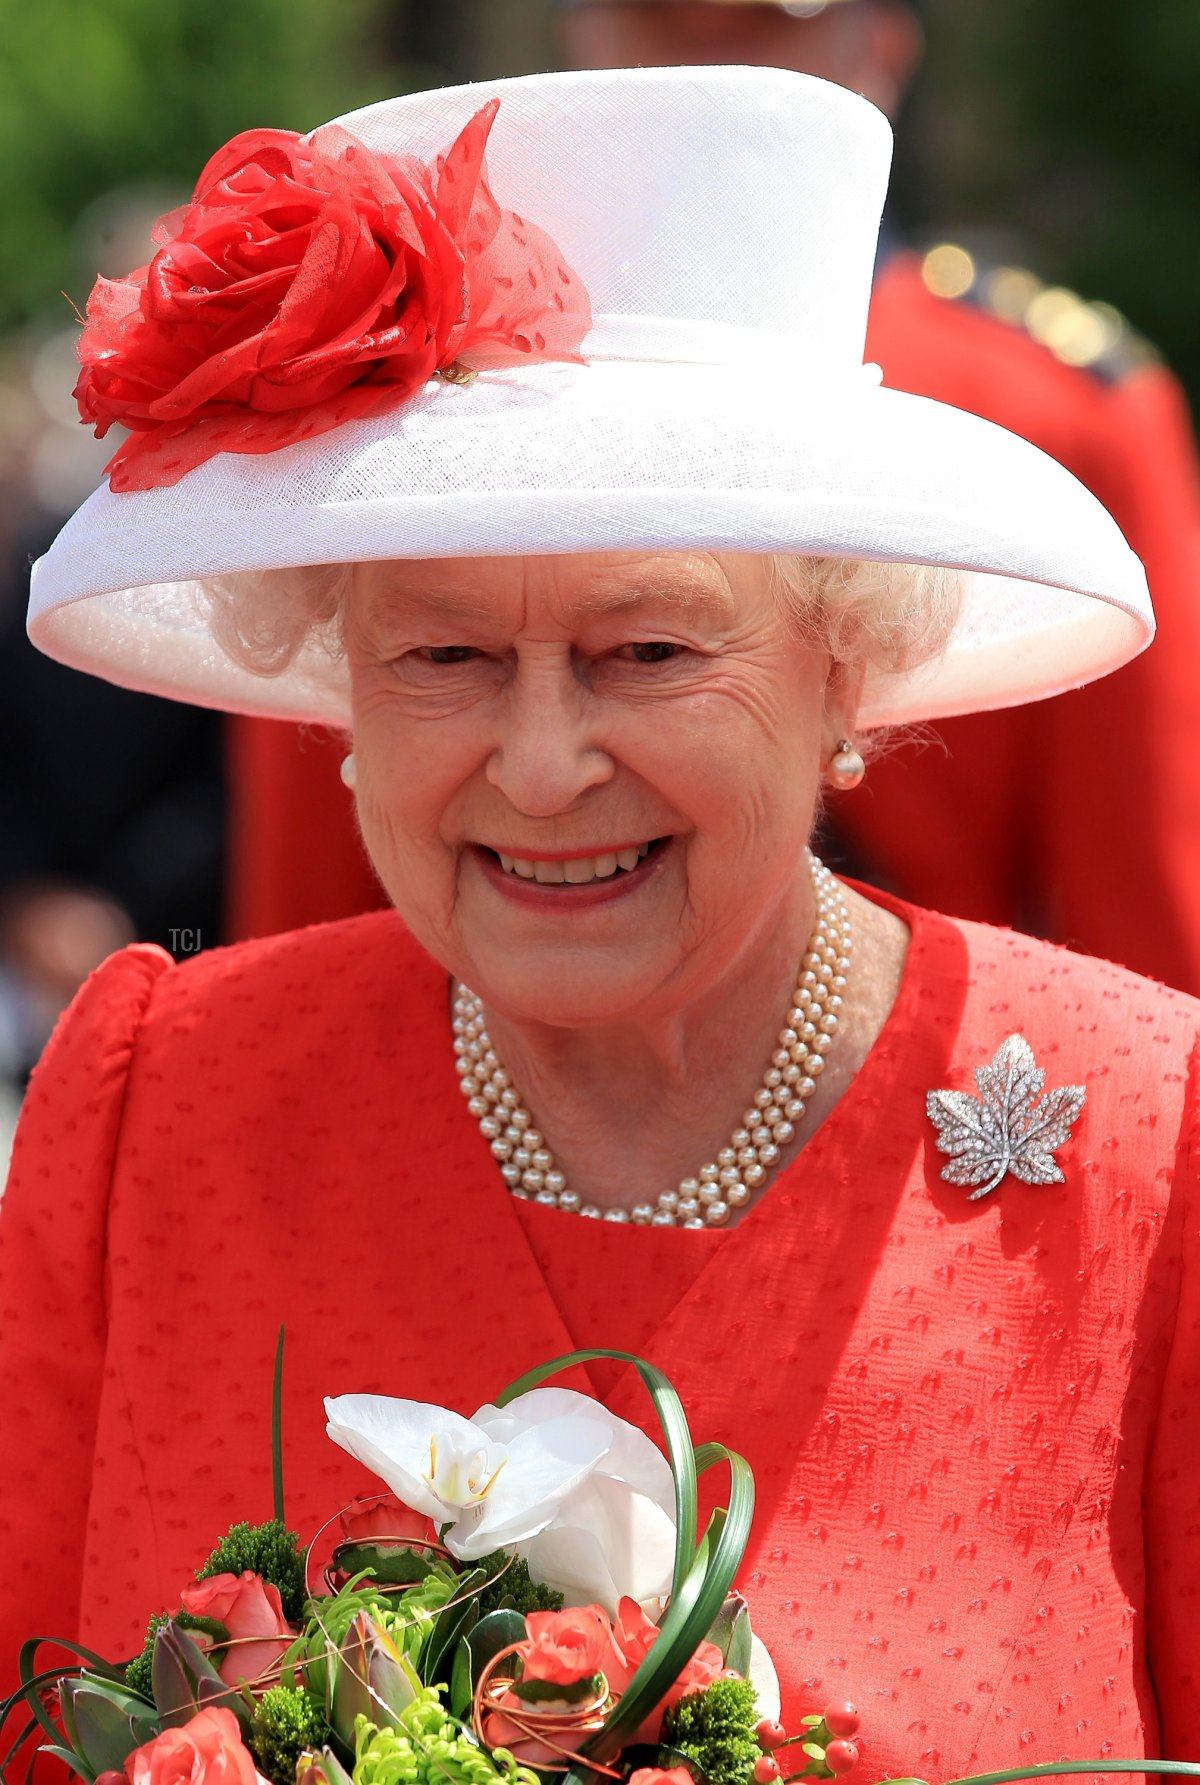 Queen Elizabeth II arrives for Canada Day celebrations on Parliament Hill on July 1, 2010 in Ottawa, Canada